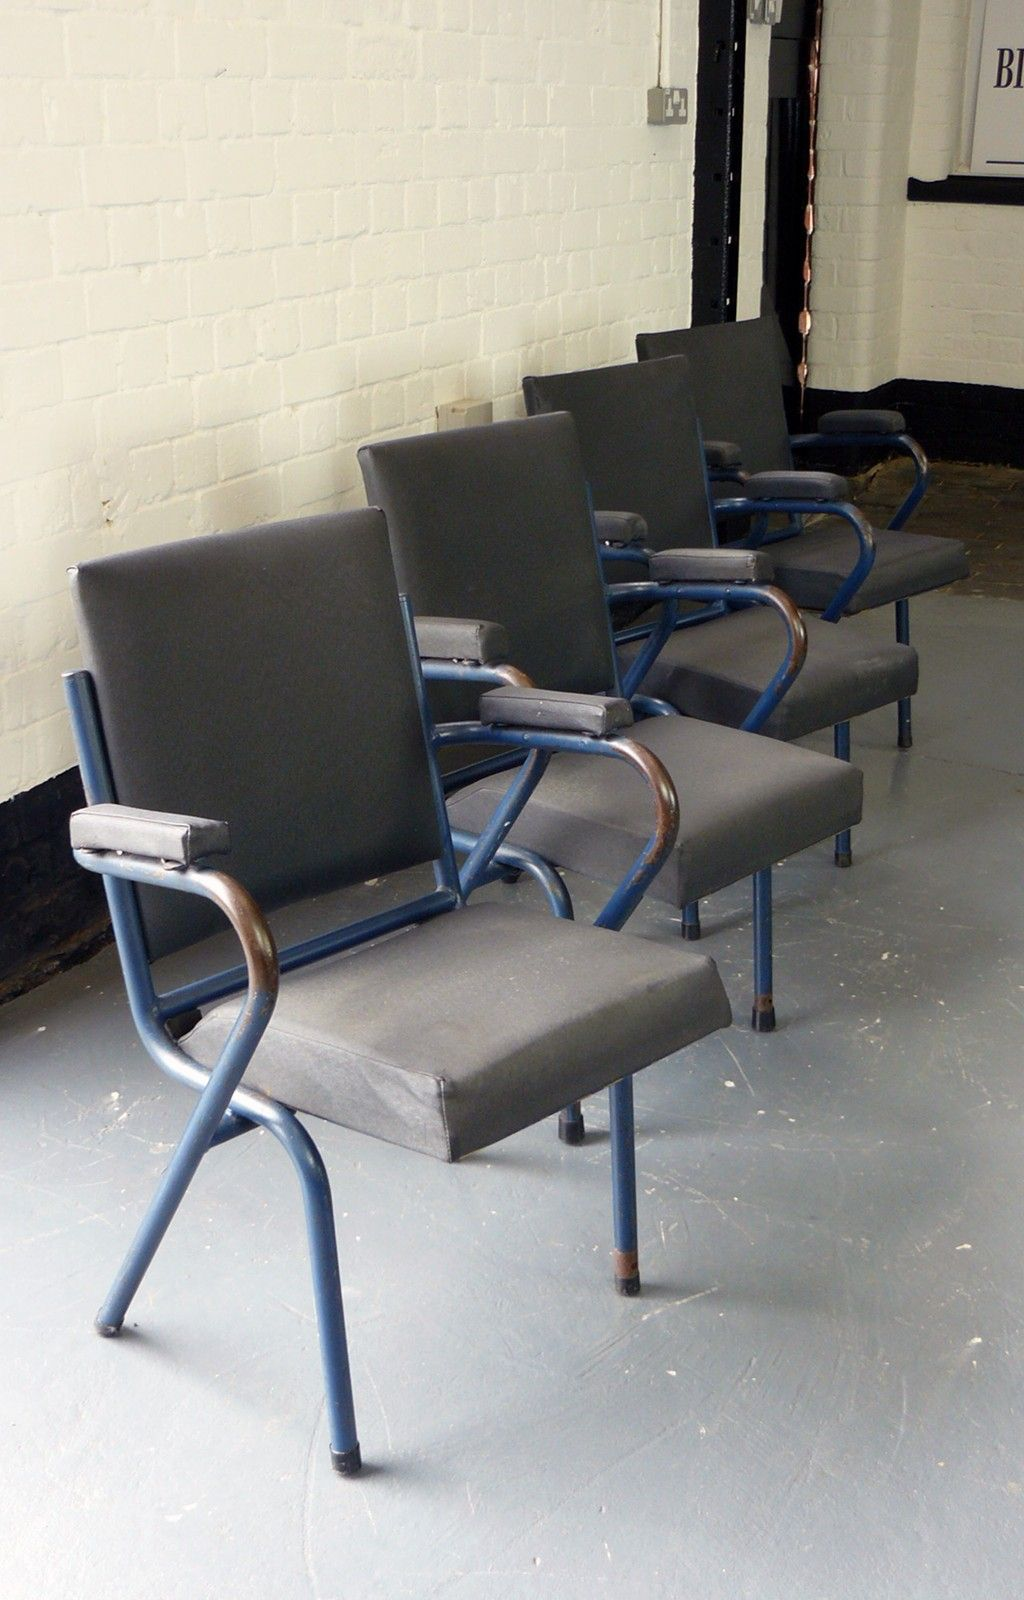 PAIR OF VINTAGE 1940S/50S INDUSTRIAL WORK CHAIRS Billy Hunt Vintage  Industrial